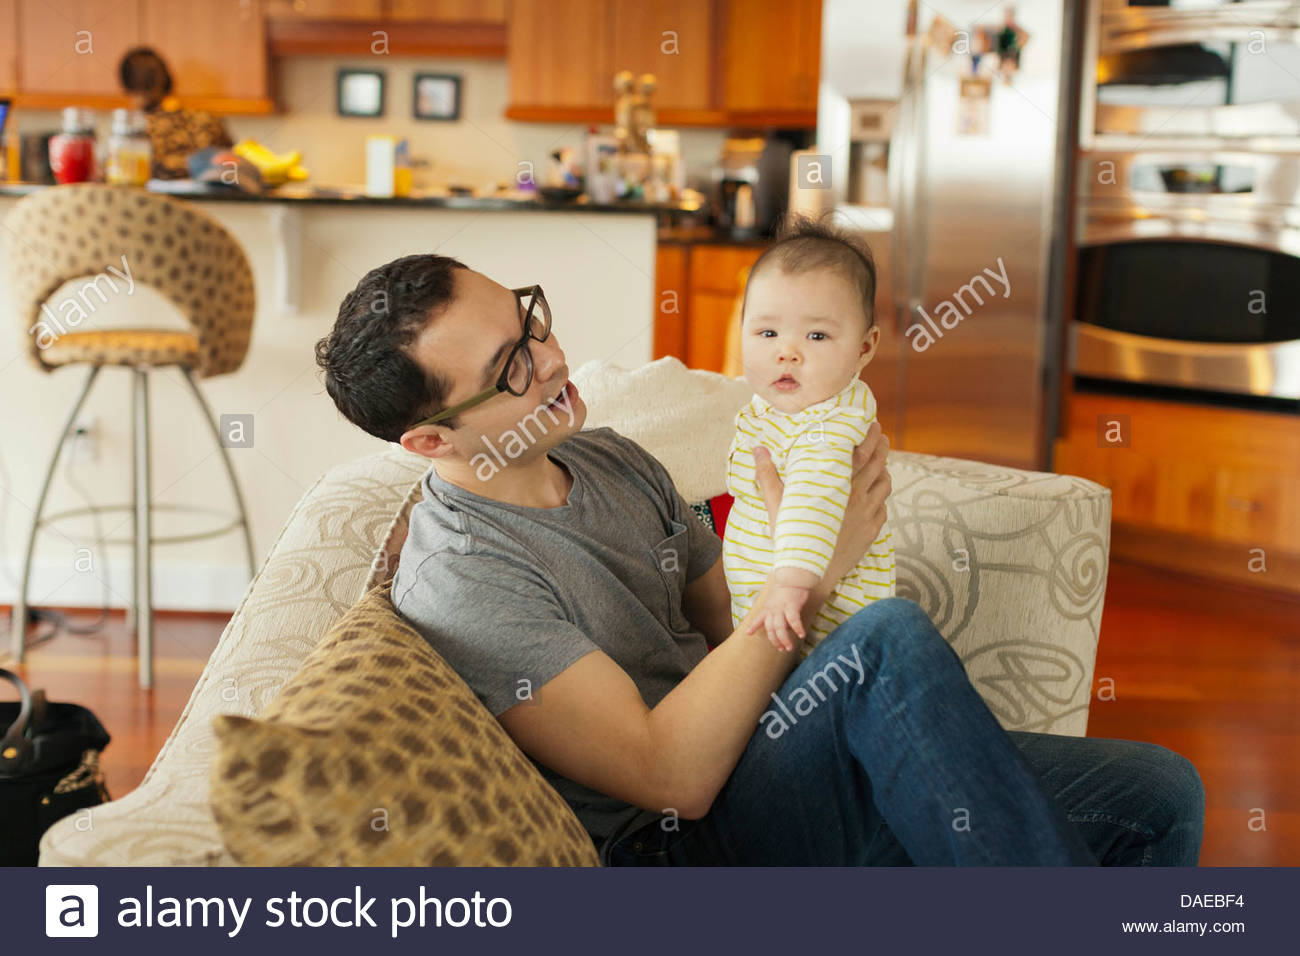 Father sitting on sofa with baby daughter Stock Photo